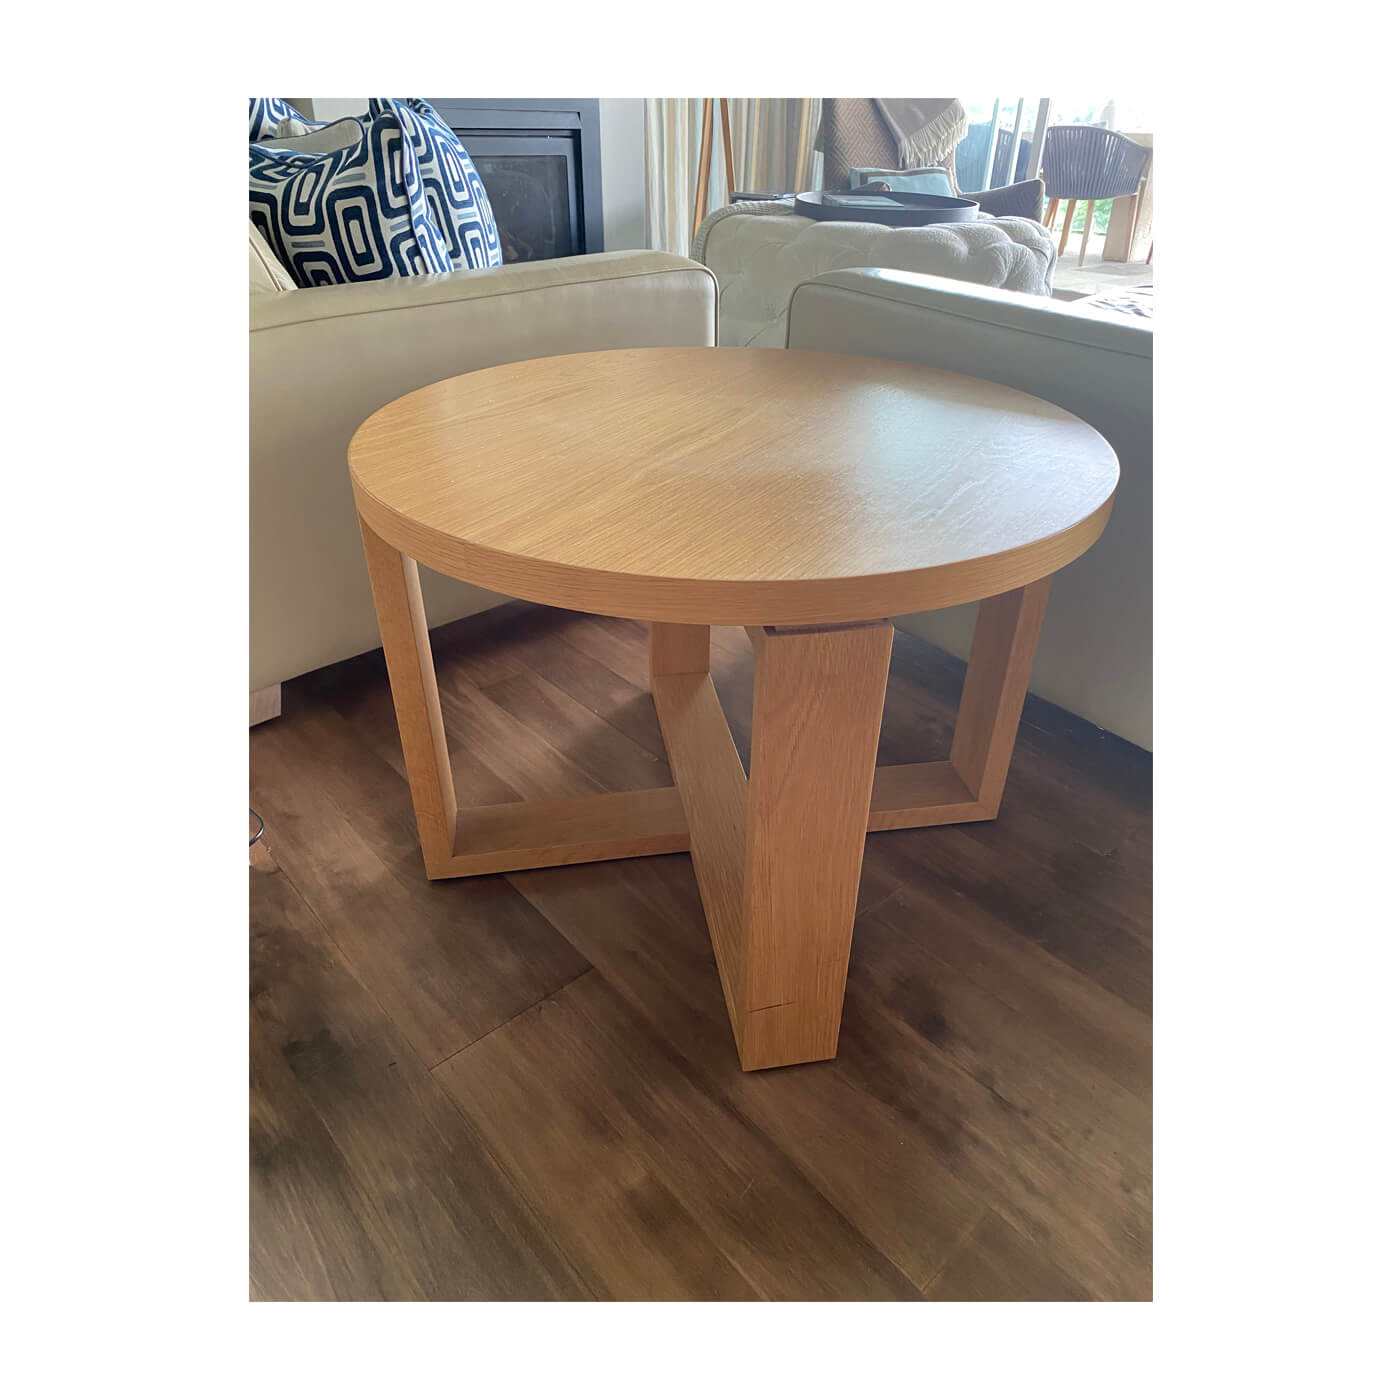 Contemporary round side table with cross base